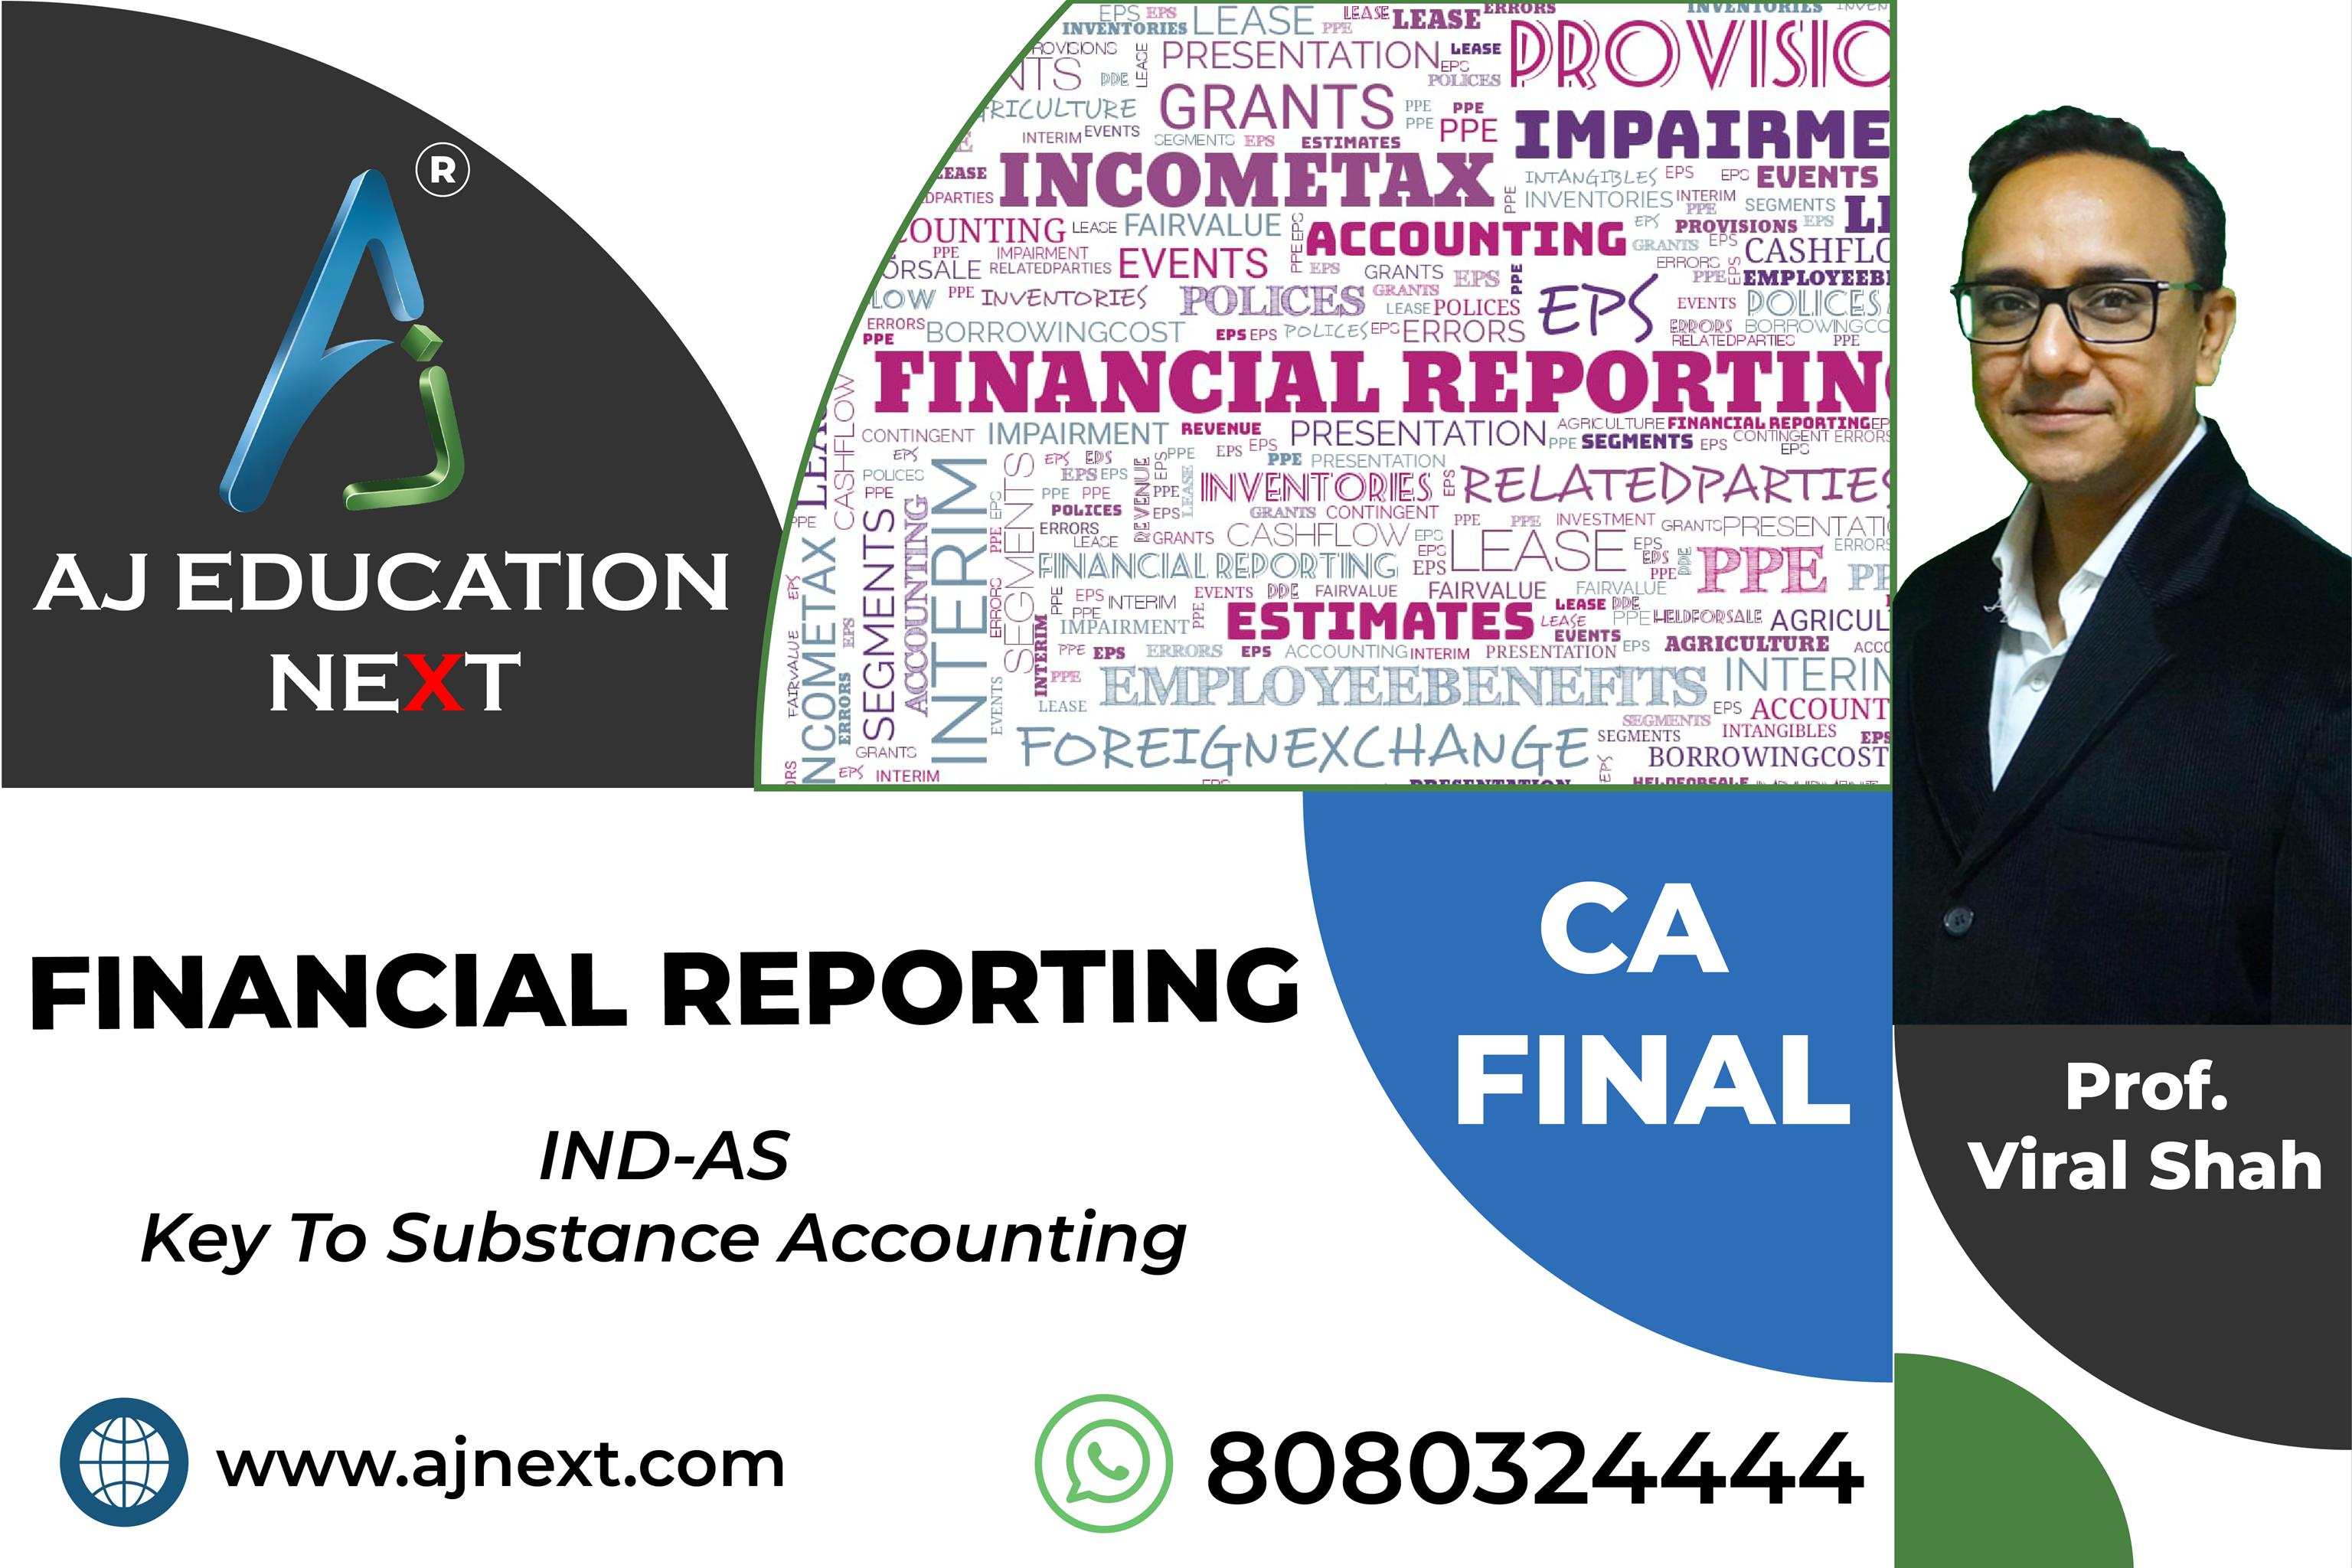 FINANCIAL REPORTING – IND-AS Charts